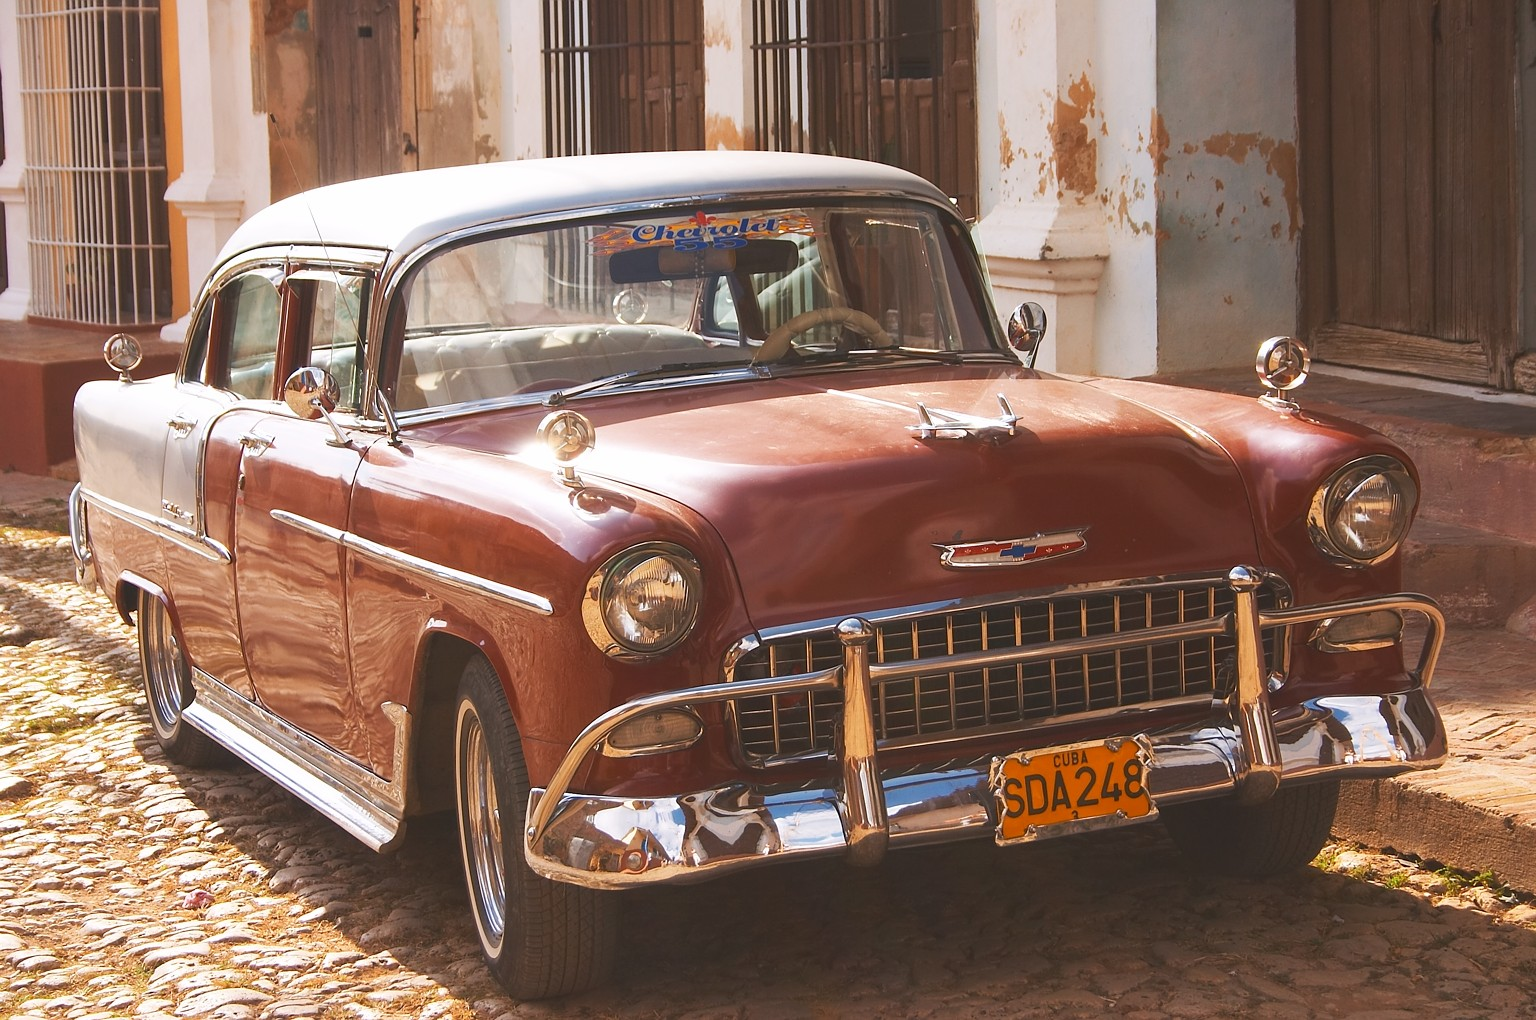 File:Old Chevrolet in Trinidad.jpg - Wikimedia Commons